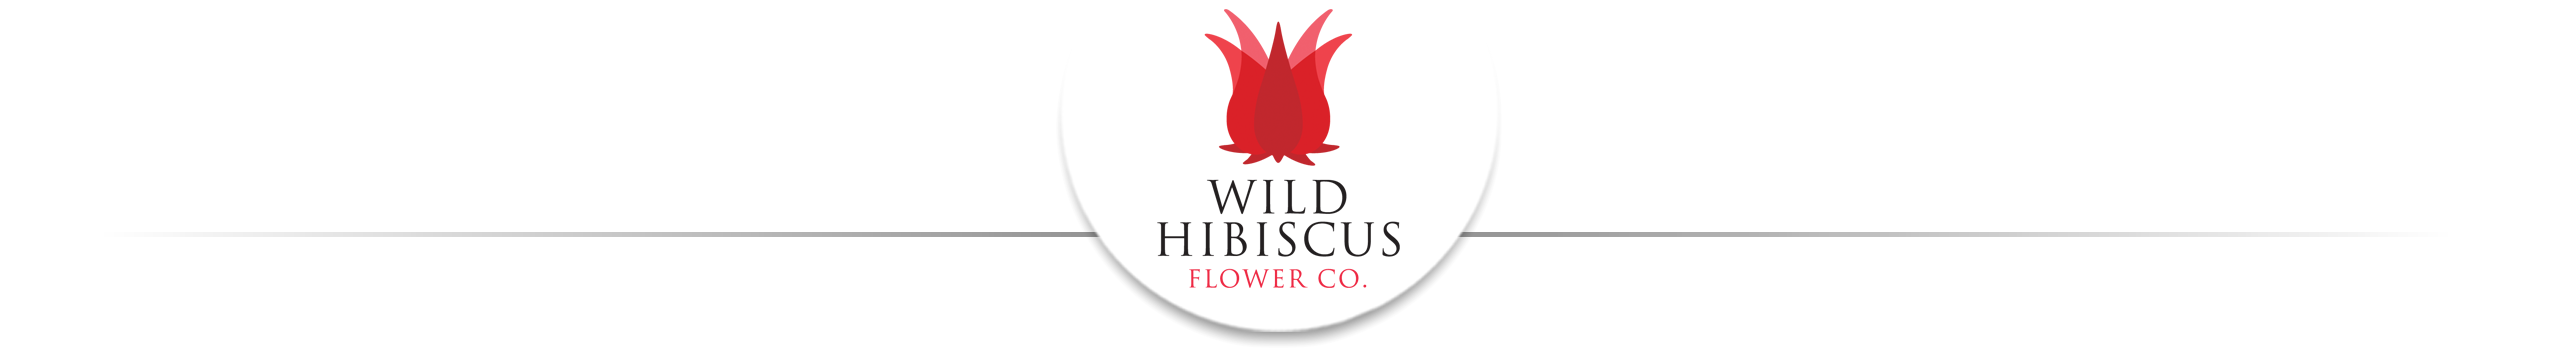 Recipes Page 9 Wild Hibiscus Flower Co